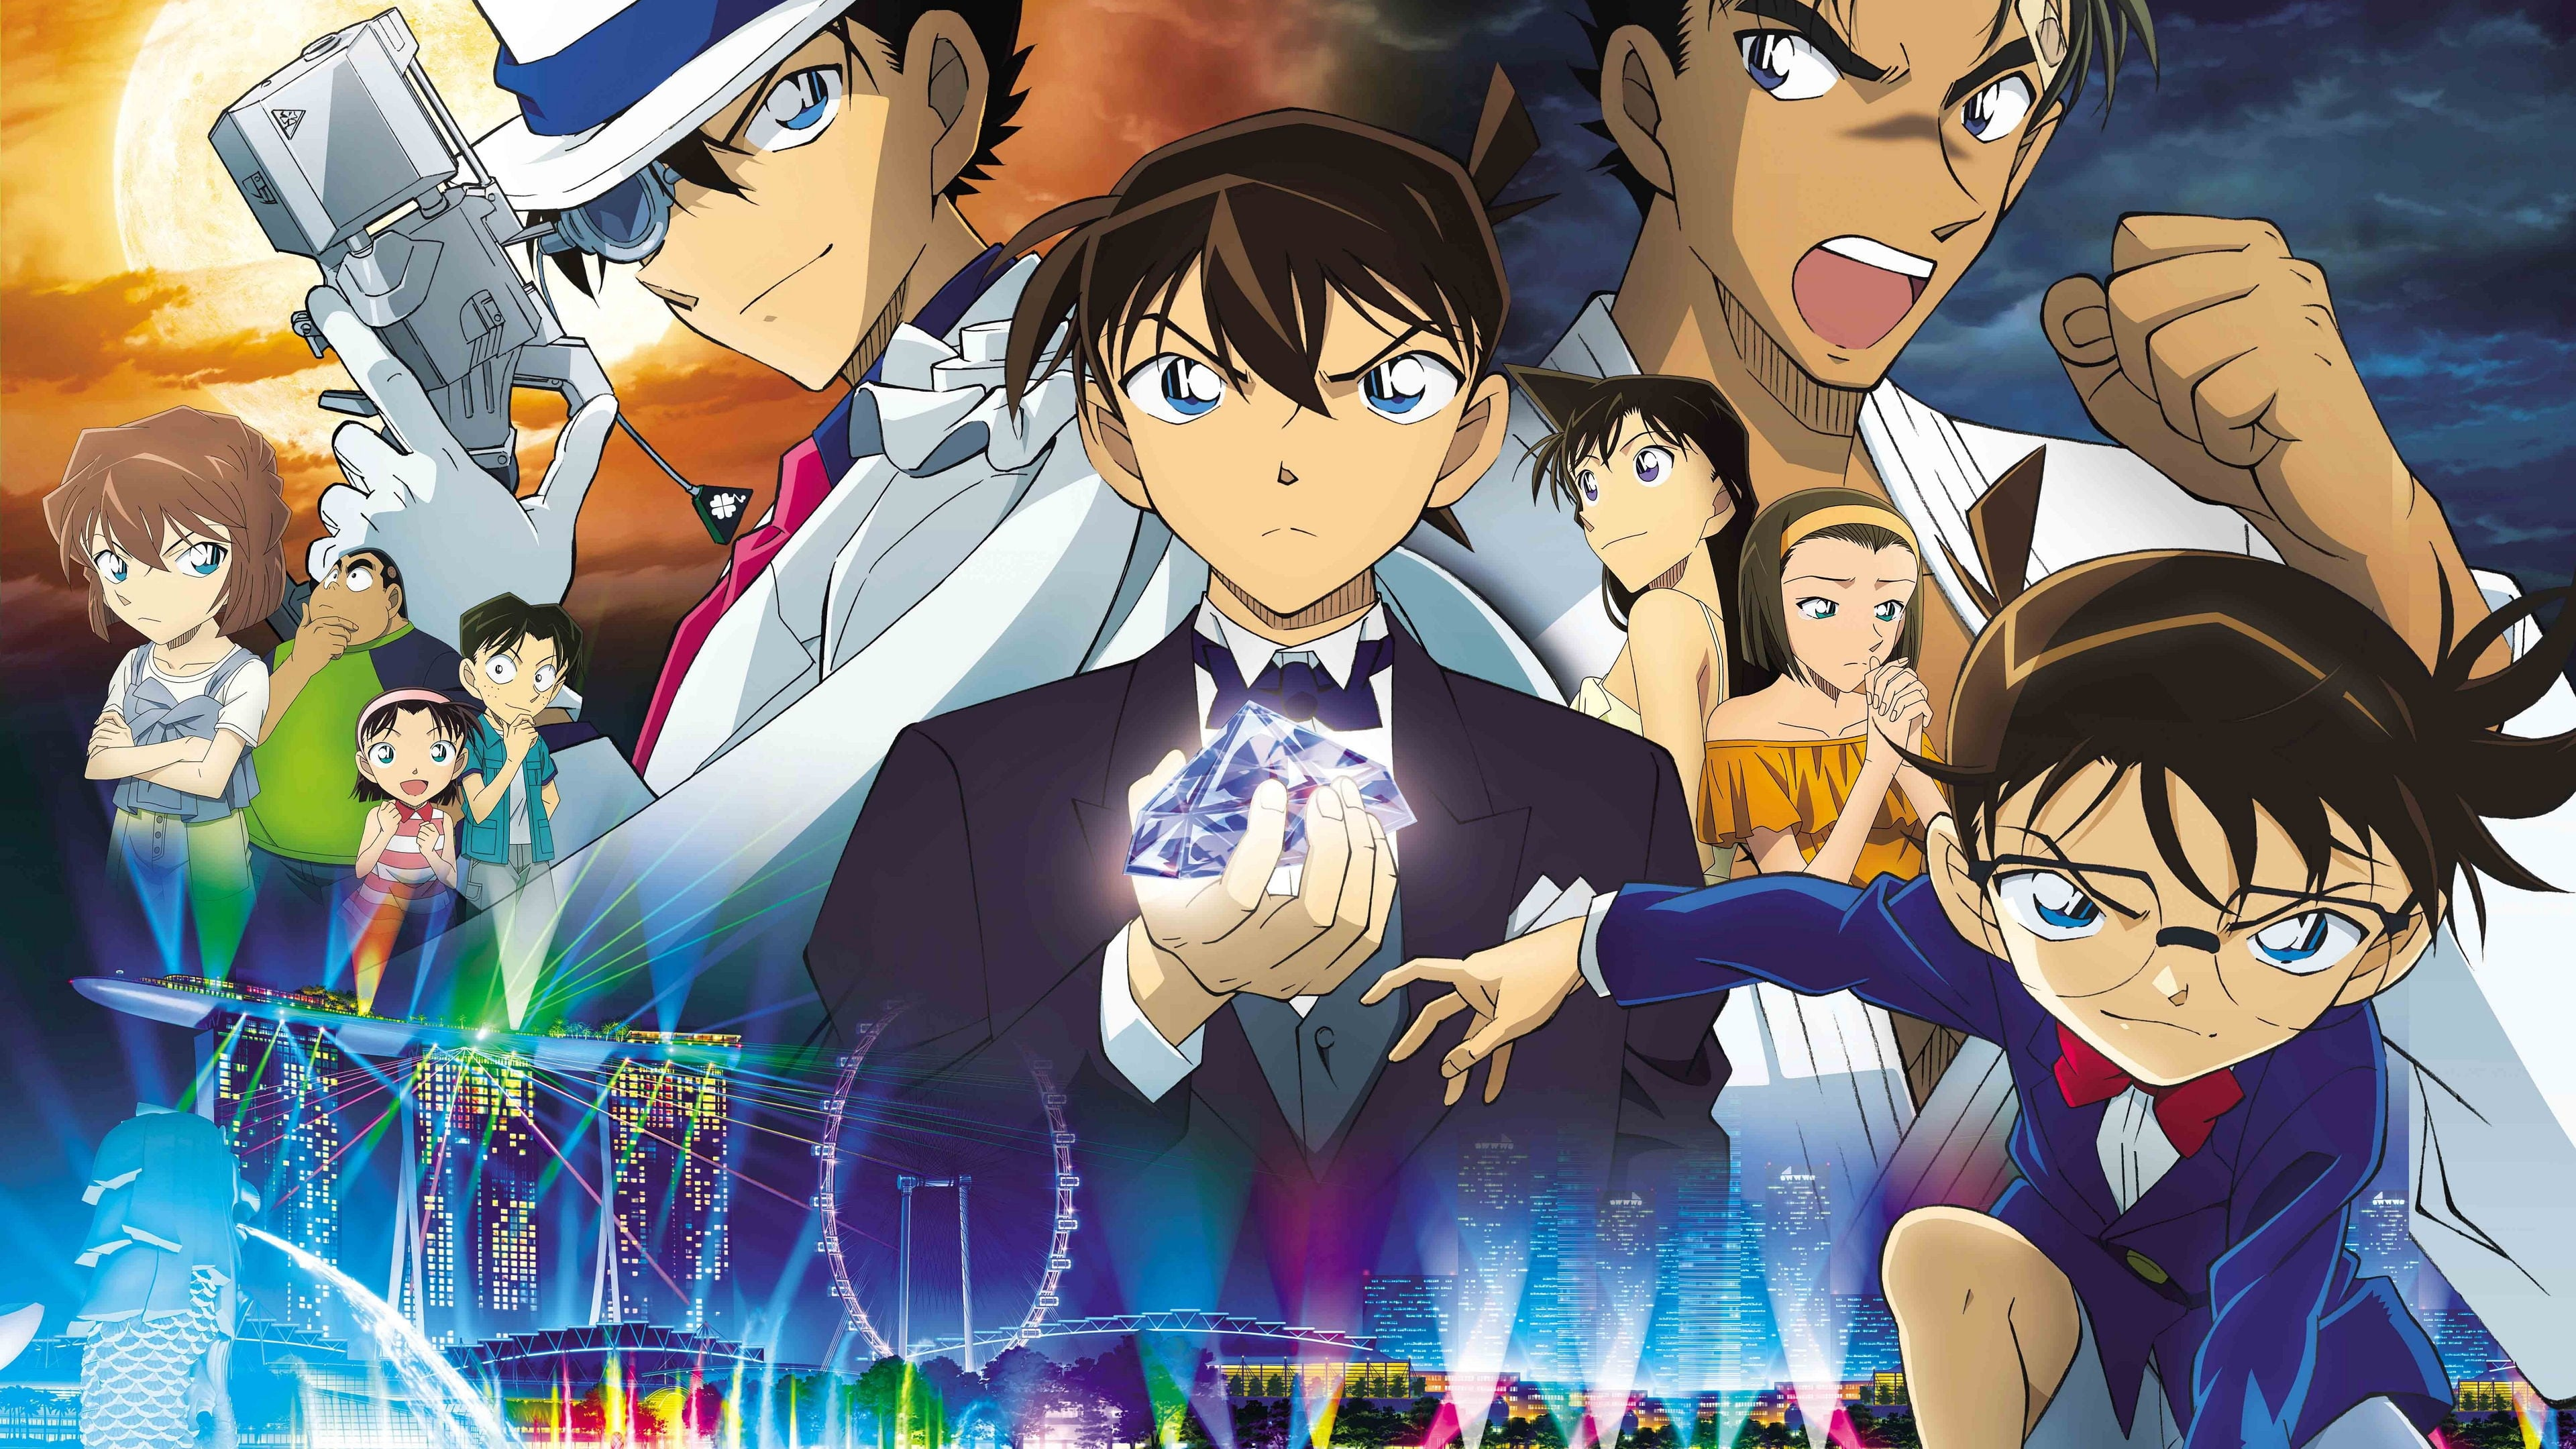 Bleue Saphir Streaming Detective Conan The Fist Of Blue Sapphire 2019 Full